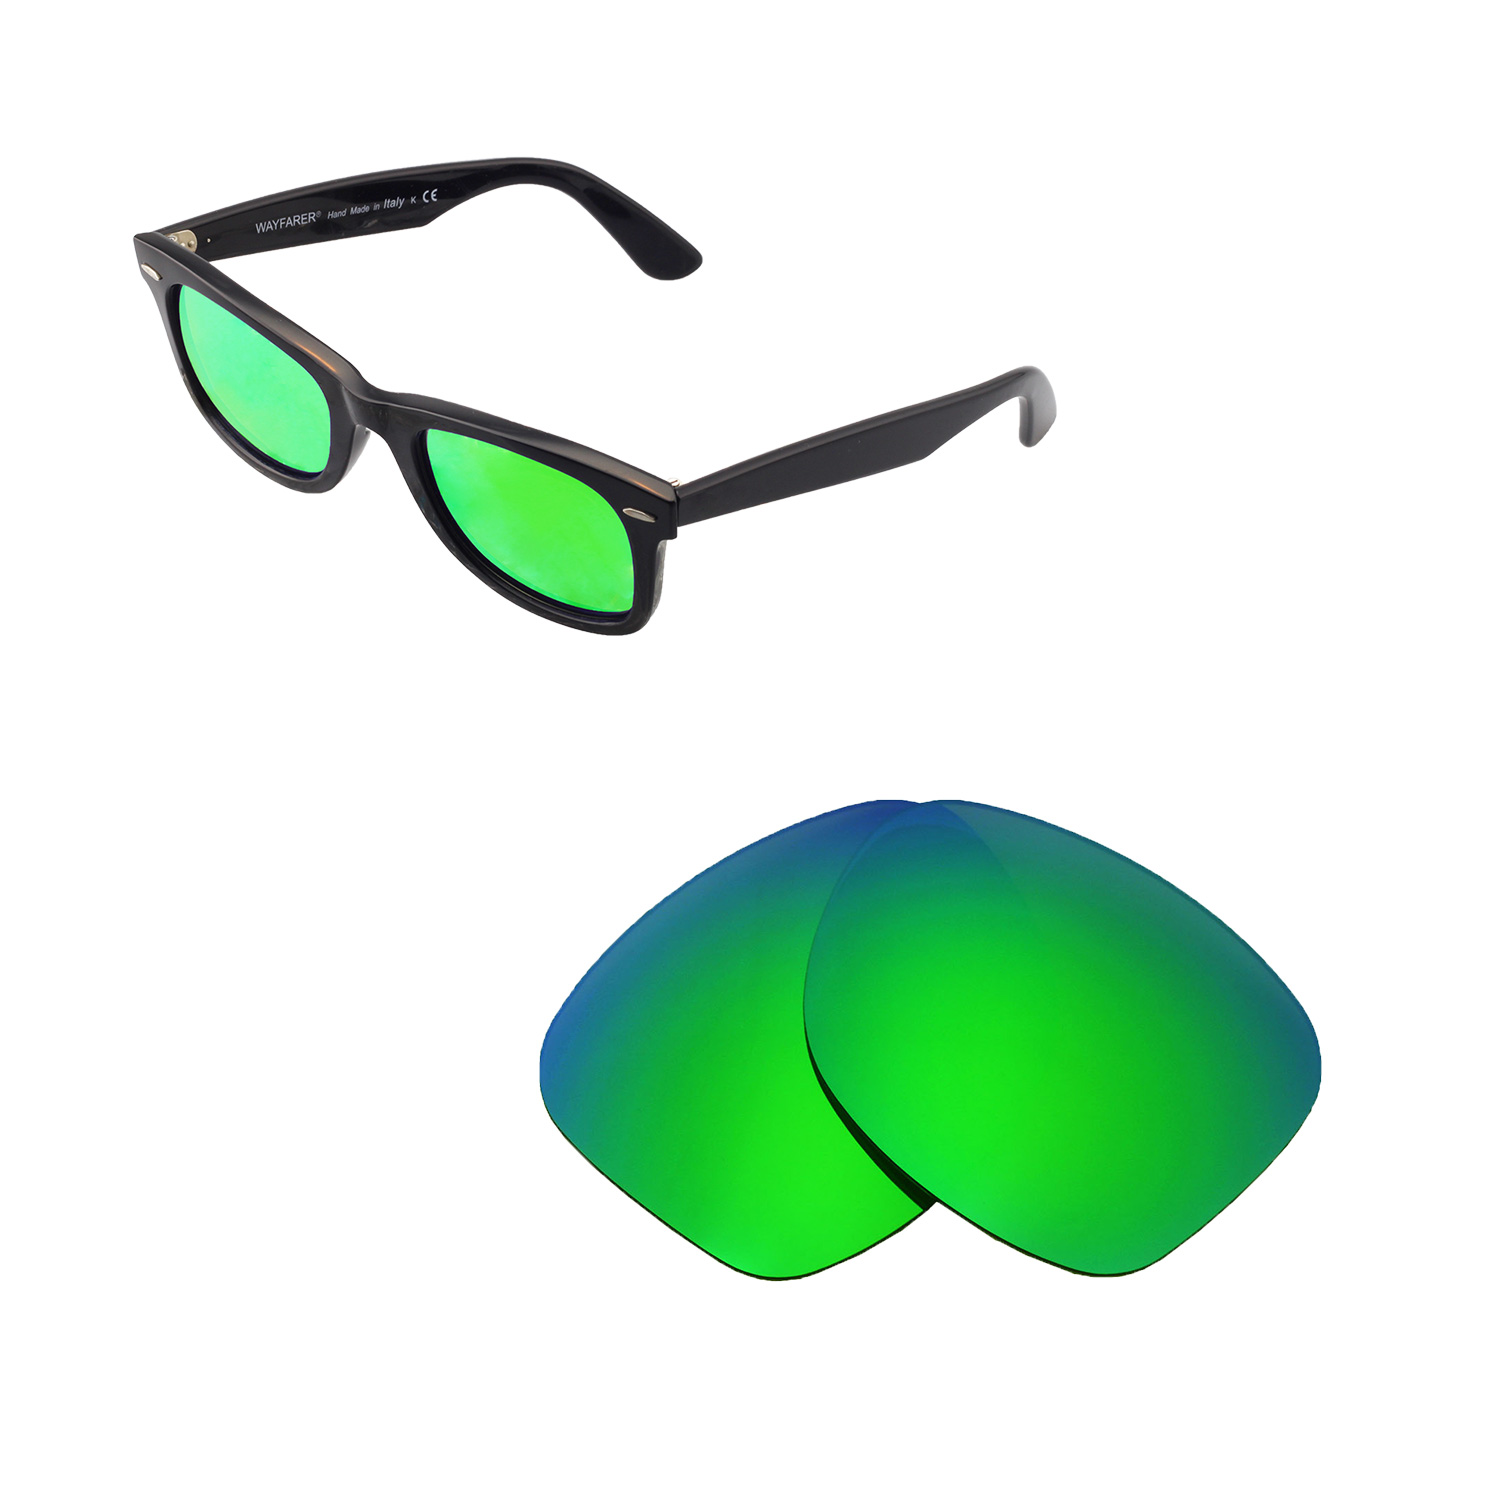 4af9aa44cfcd Details about New Walleva Polarized Emerald Lenses For Ray-Ban Wayfarer  RB2140 50mm